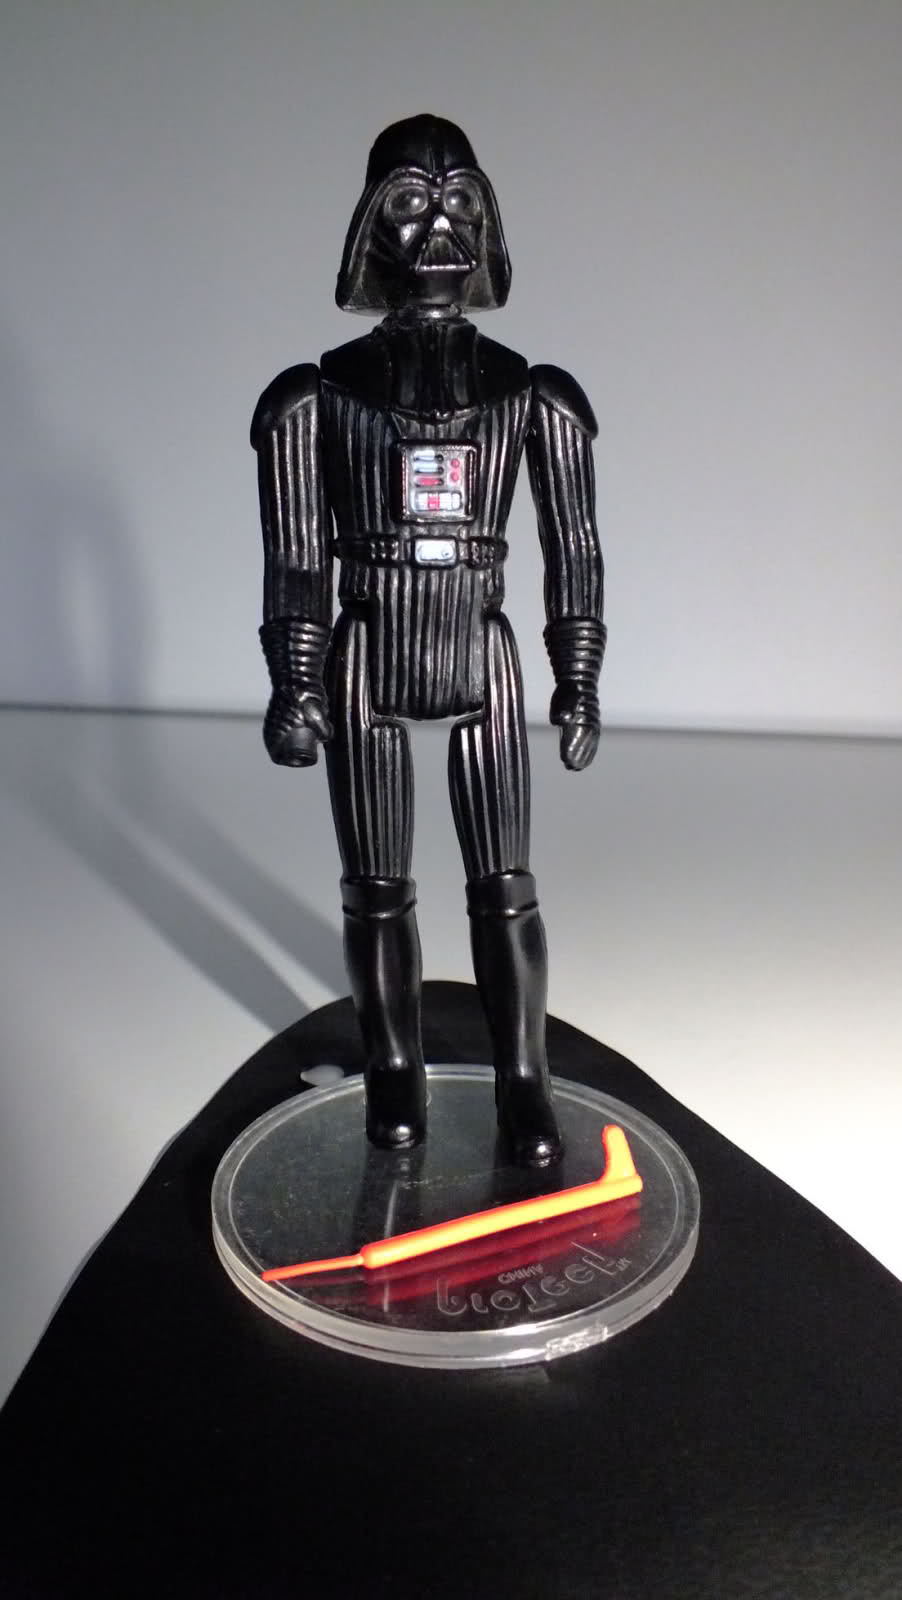 Are either of these 'Clipper' Darth Vader Figures? 2prsl8p